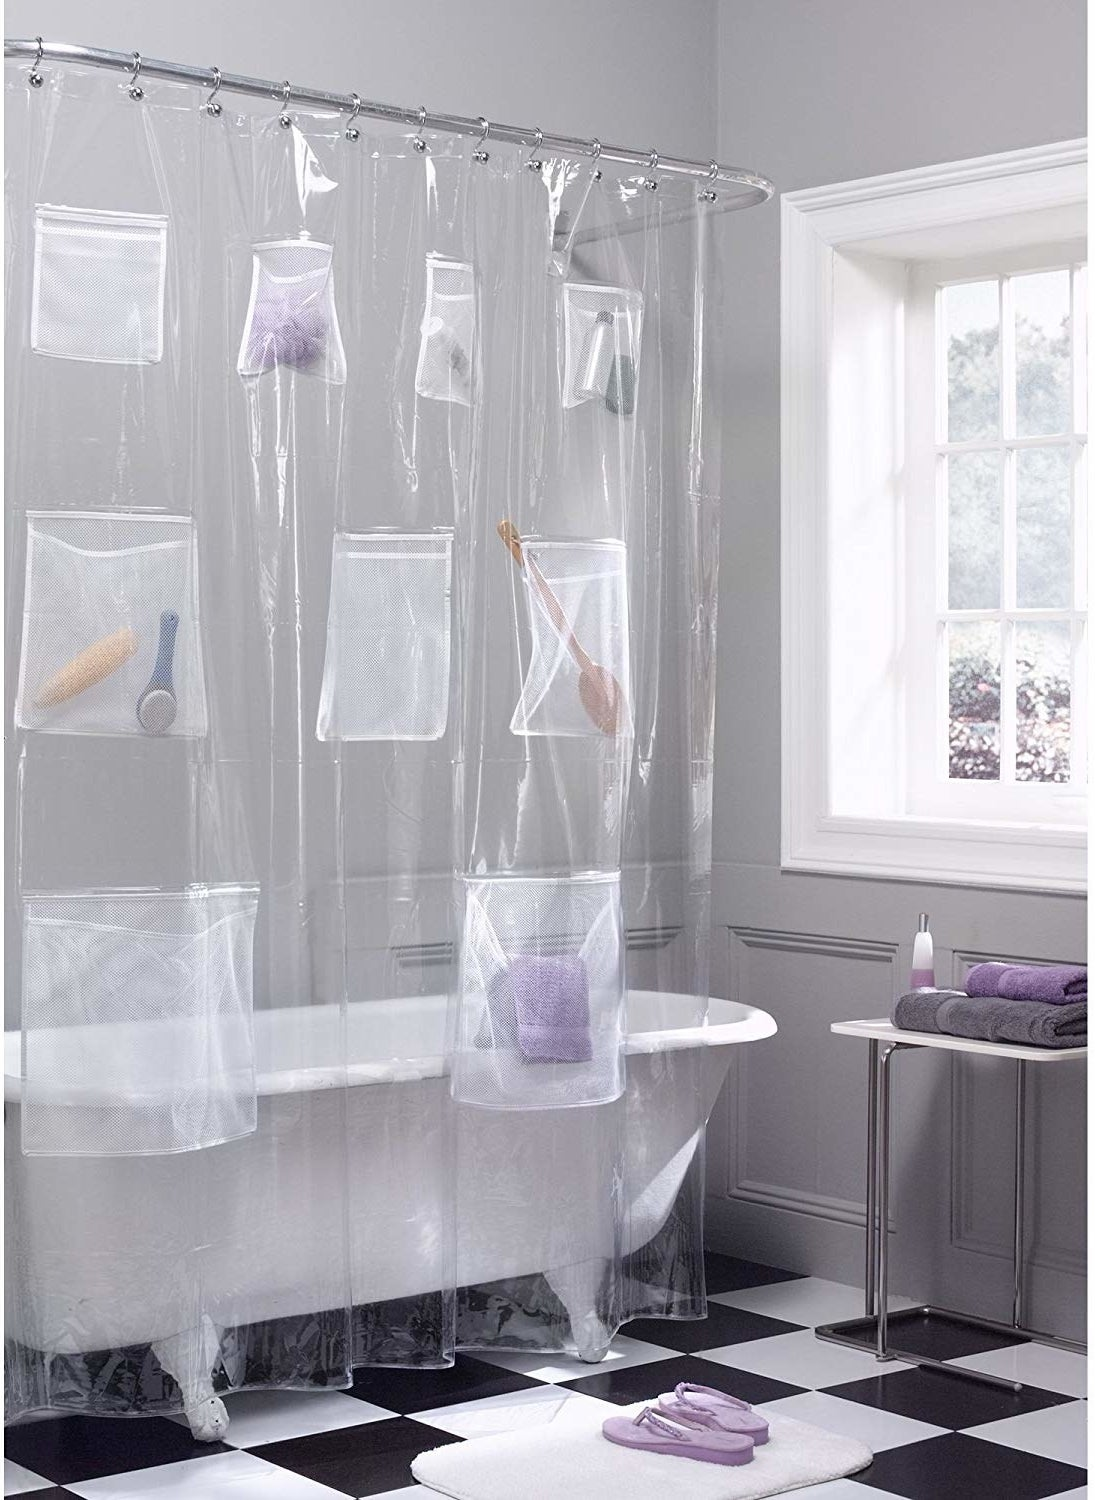 The shower curtain hung in a neat bathroom and filled with brushes, towels, and hair products